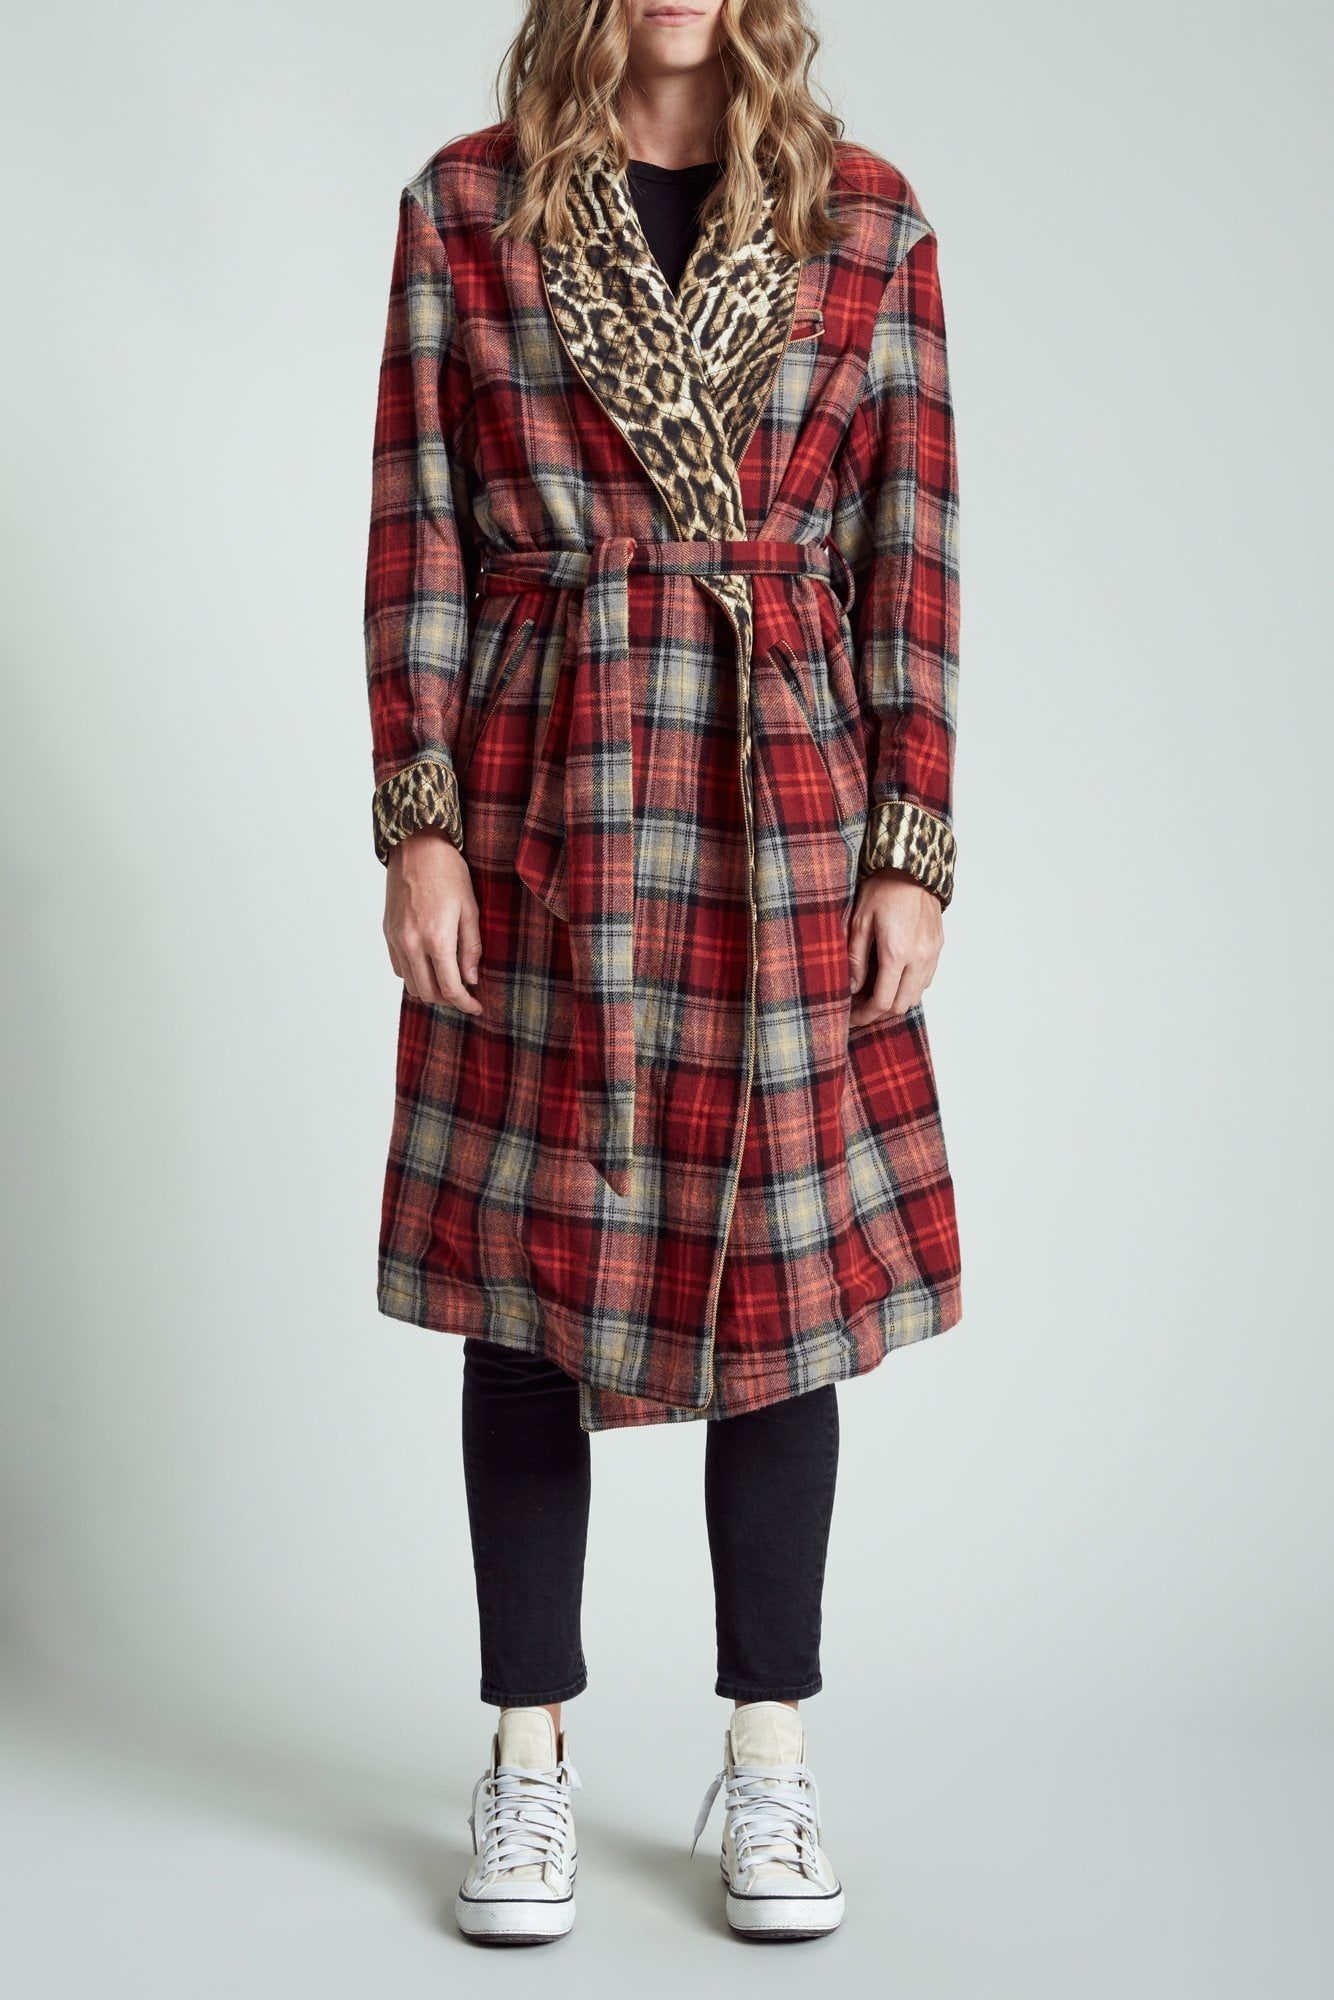 Winter Robe Jacket - Red and Grey Plaid with Leopard